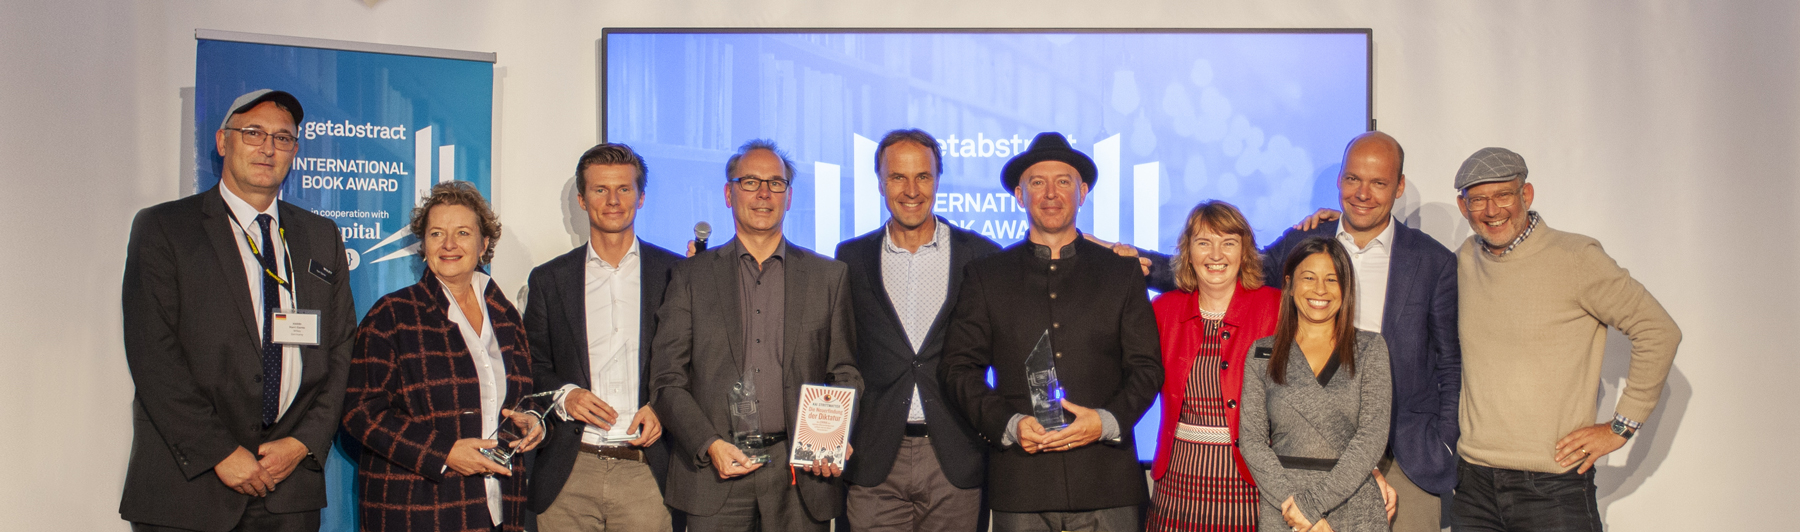 The Winners of the getAbstract International Book Award 2019